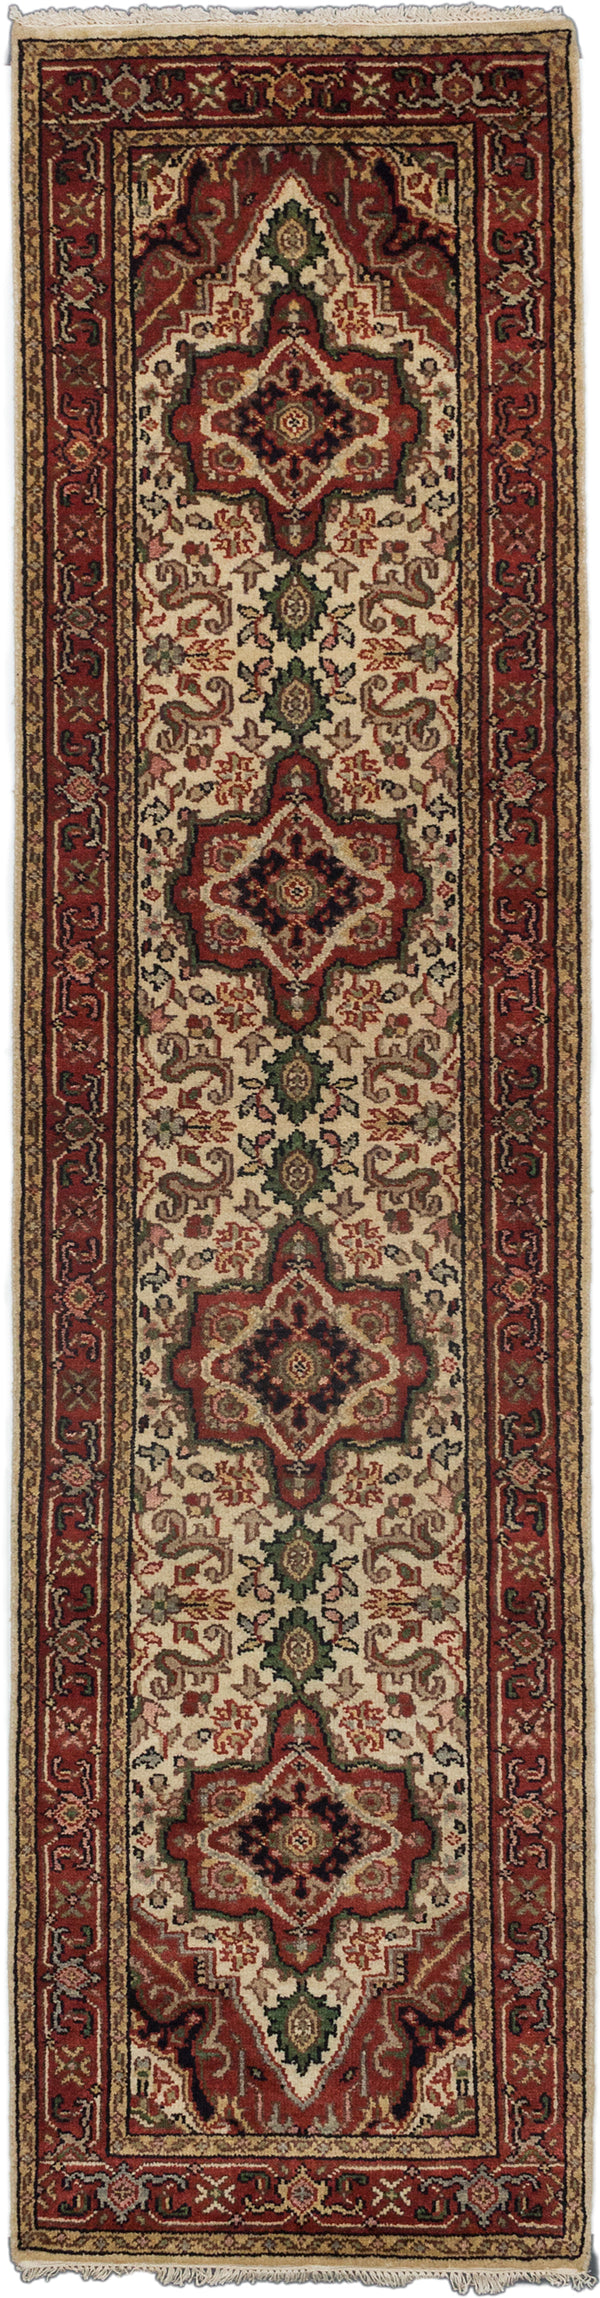 "Hand-knotted Indian Floral  Traditional Serapi-Heritage Runner rug  Cream, Dark Burgundy 2'8 x 10'3"" """